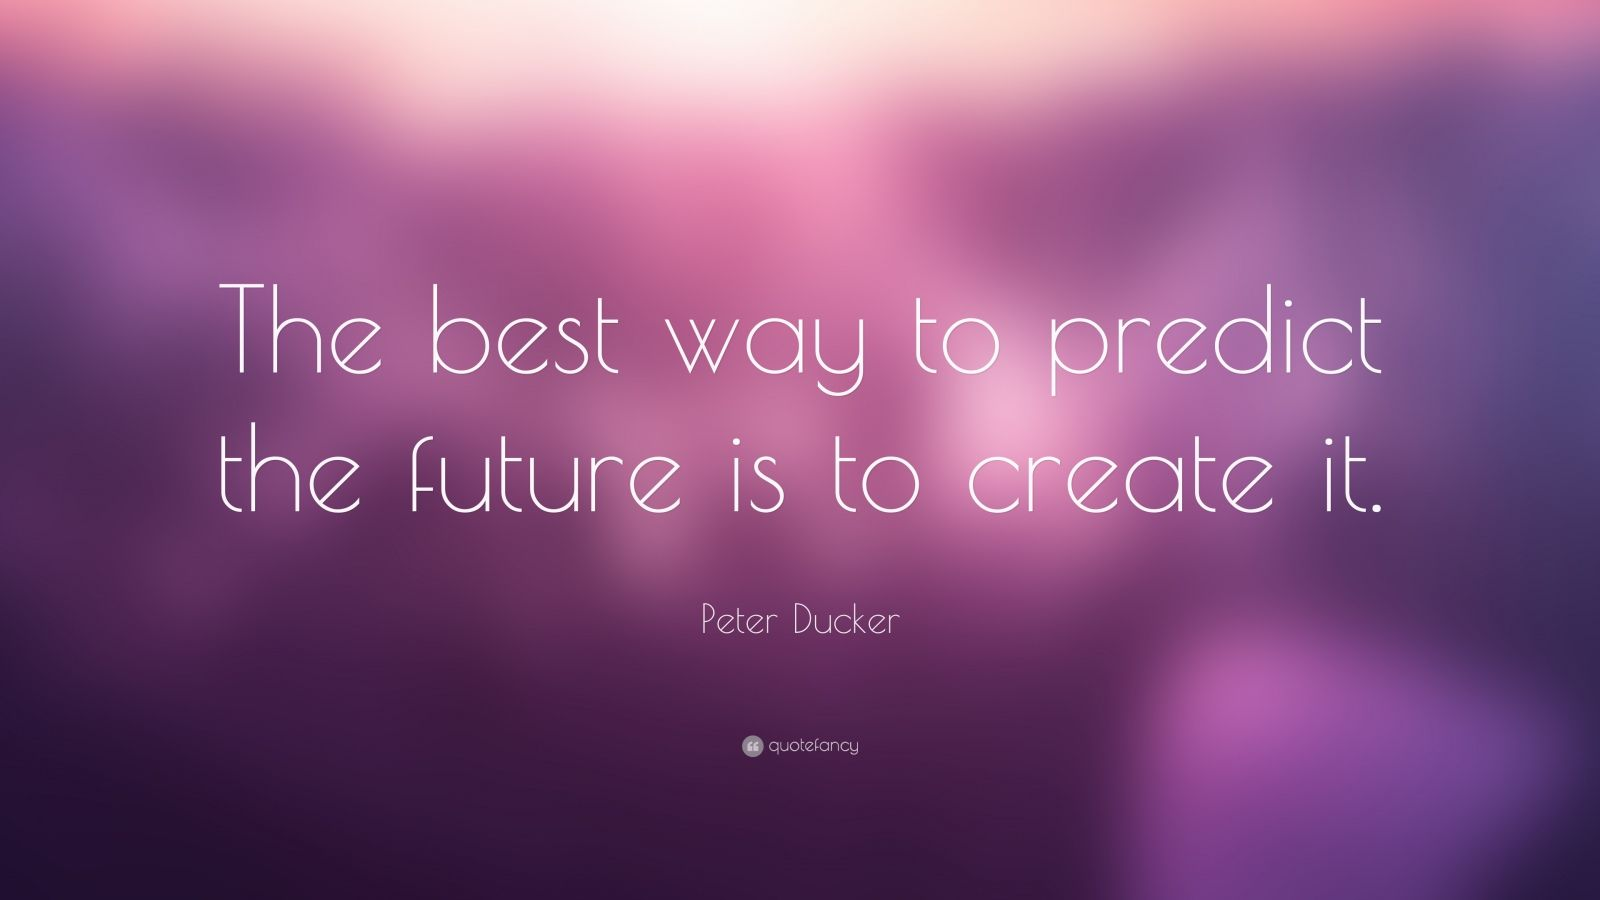 Peter Ducker Quote The best way to predict the future is